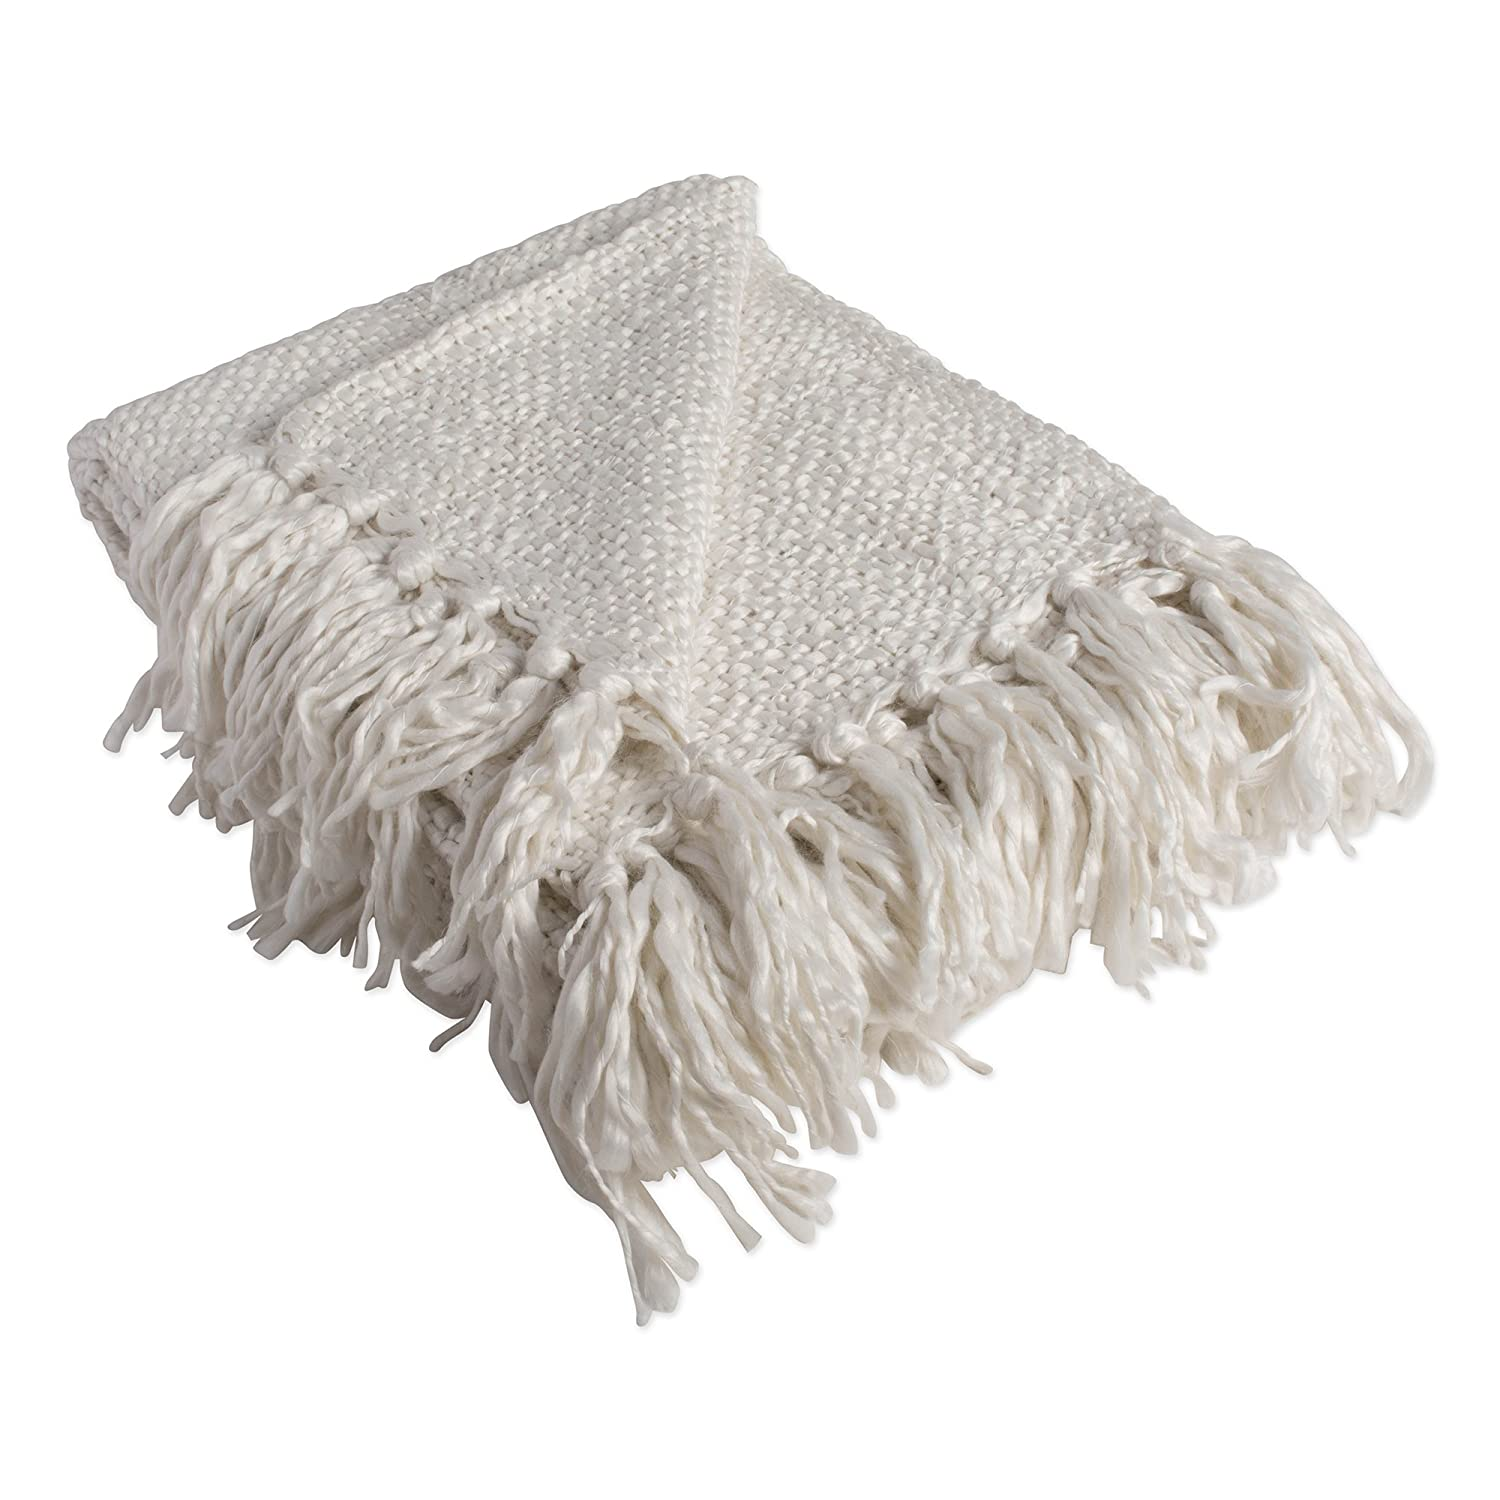 """Luxury Woven Throw Blanket with Fringe 50x60"""", Reversible Soft Warm Breathable for Bed, Chair, Couch, Picnic, Camping, Beach, Travel-Ivory"""